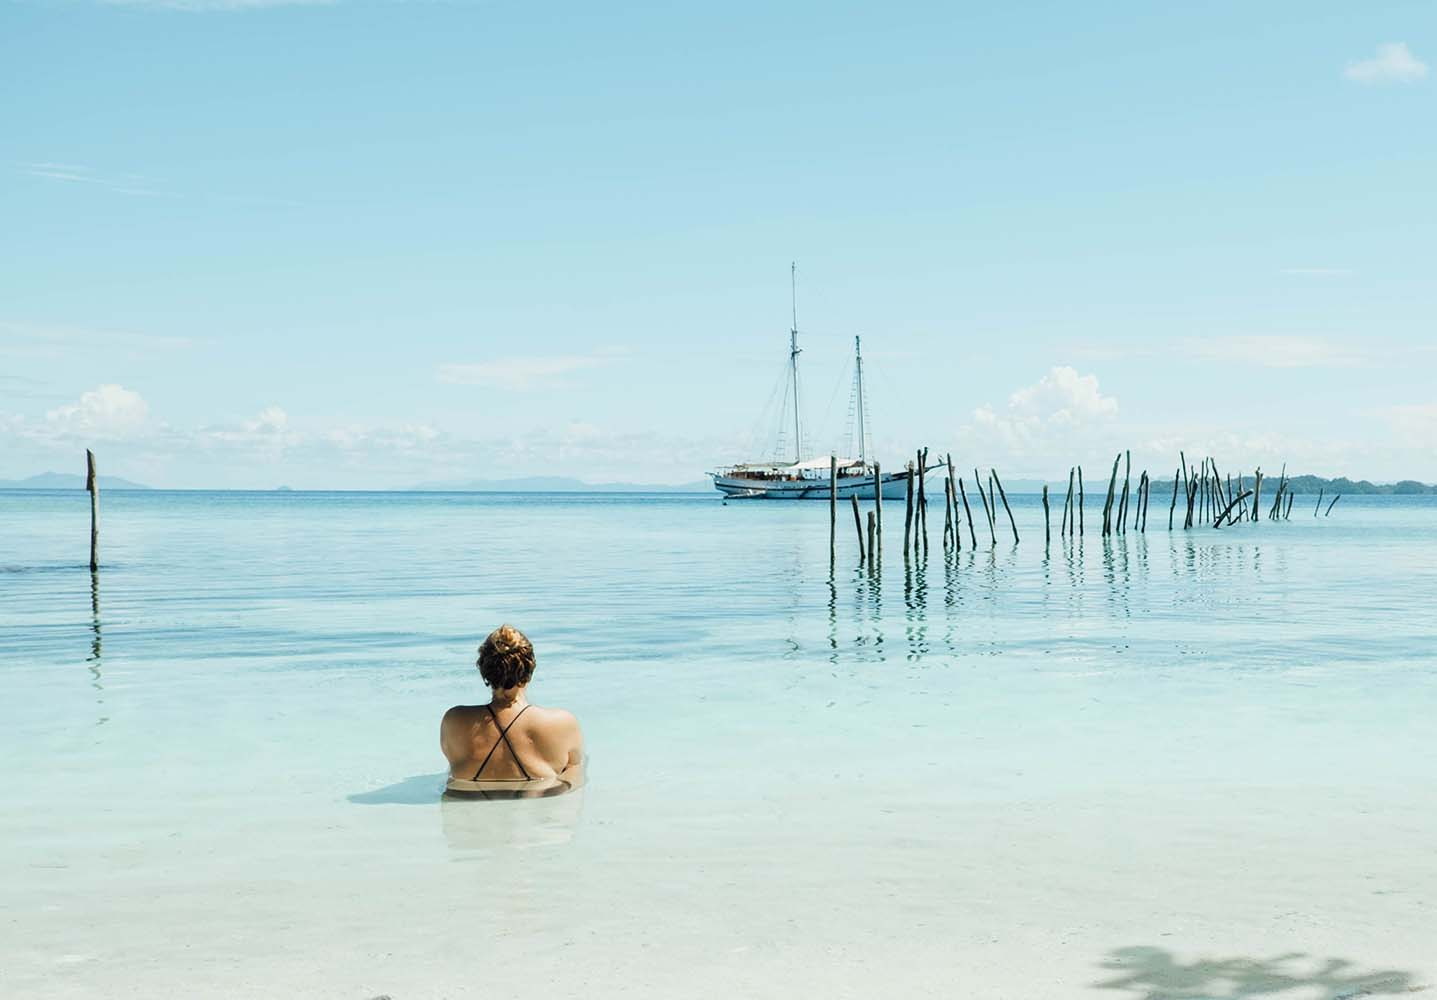 Heading scuba diving and not sure what to pack for a week sailing the Seven Seas? Check out my ultimate liveaboard packing list for mermaids.